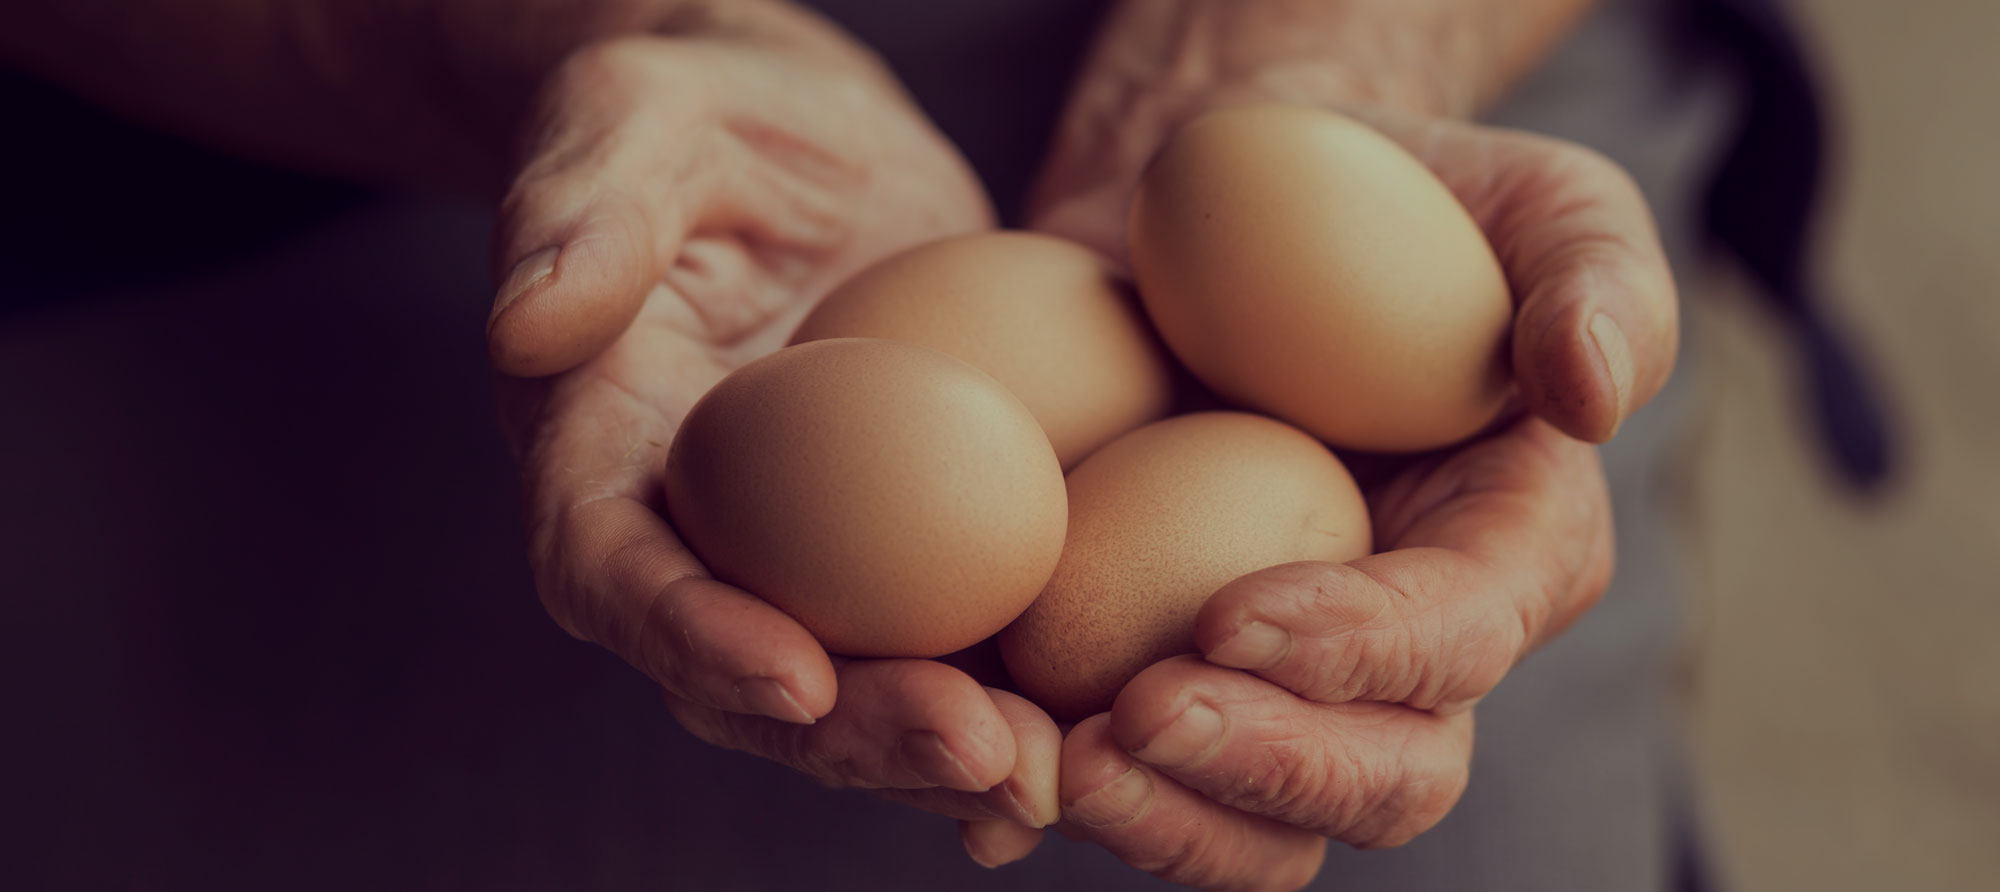 Close up of hands holding four eggs